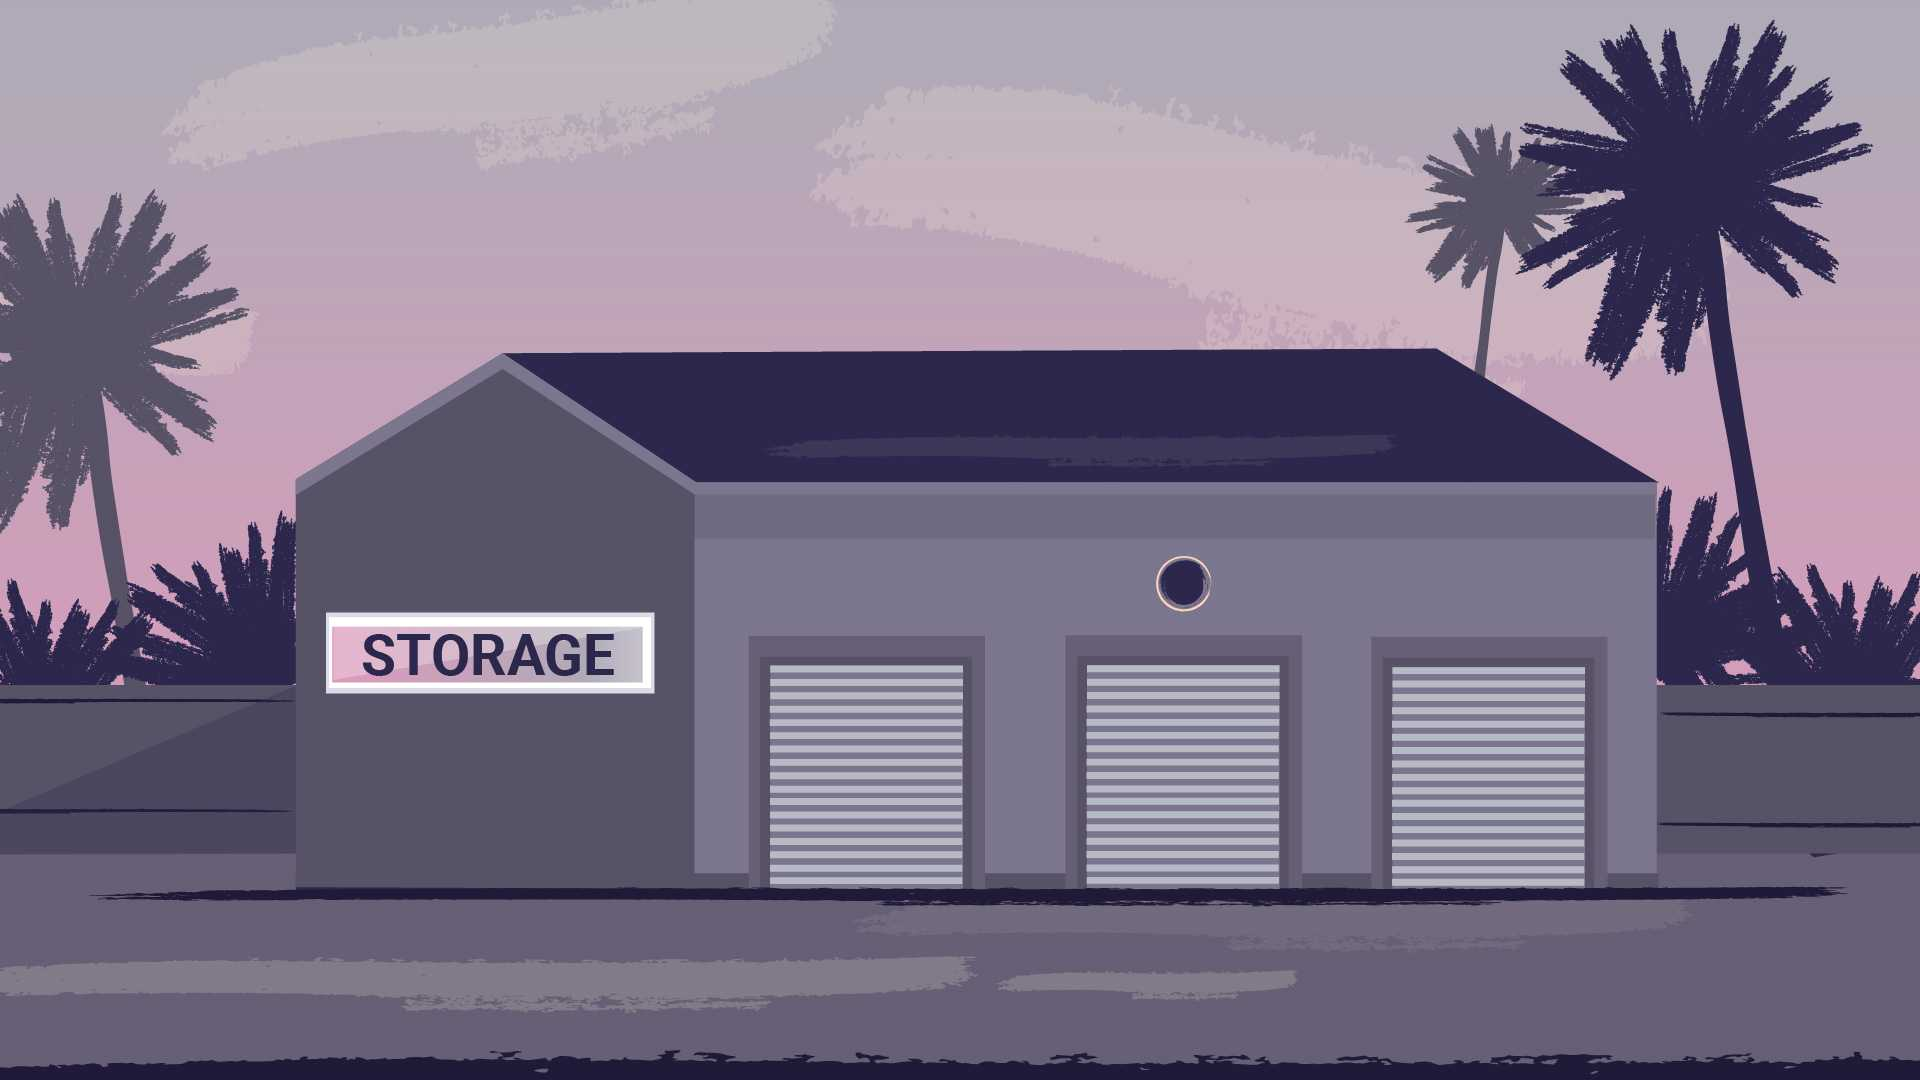 Animated image of a storage on a background of nature